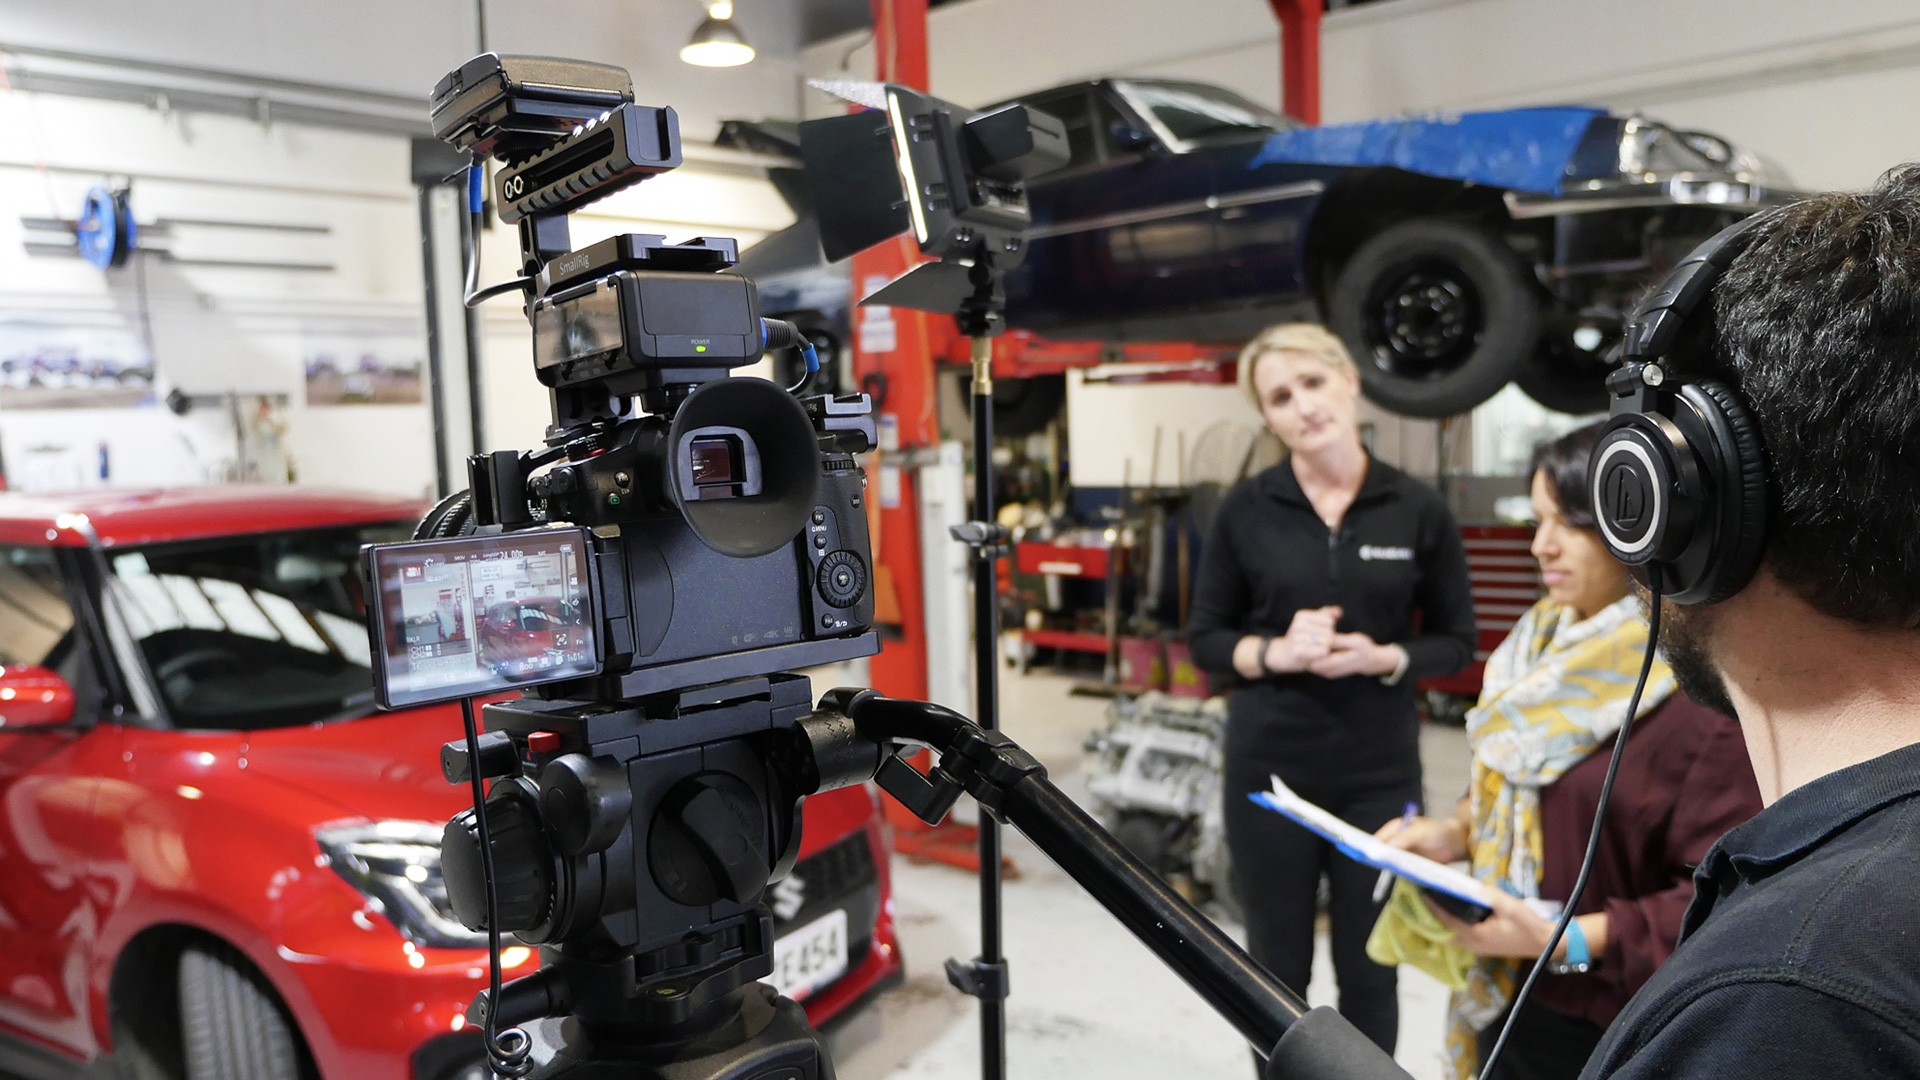 Emma Gilmour of Suzuki talking to camera